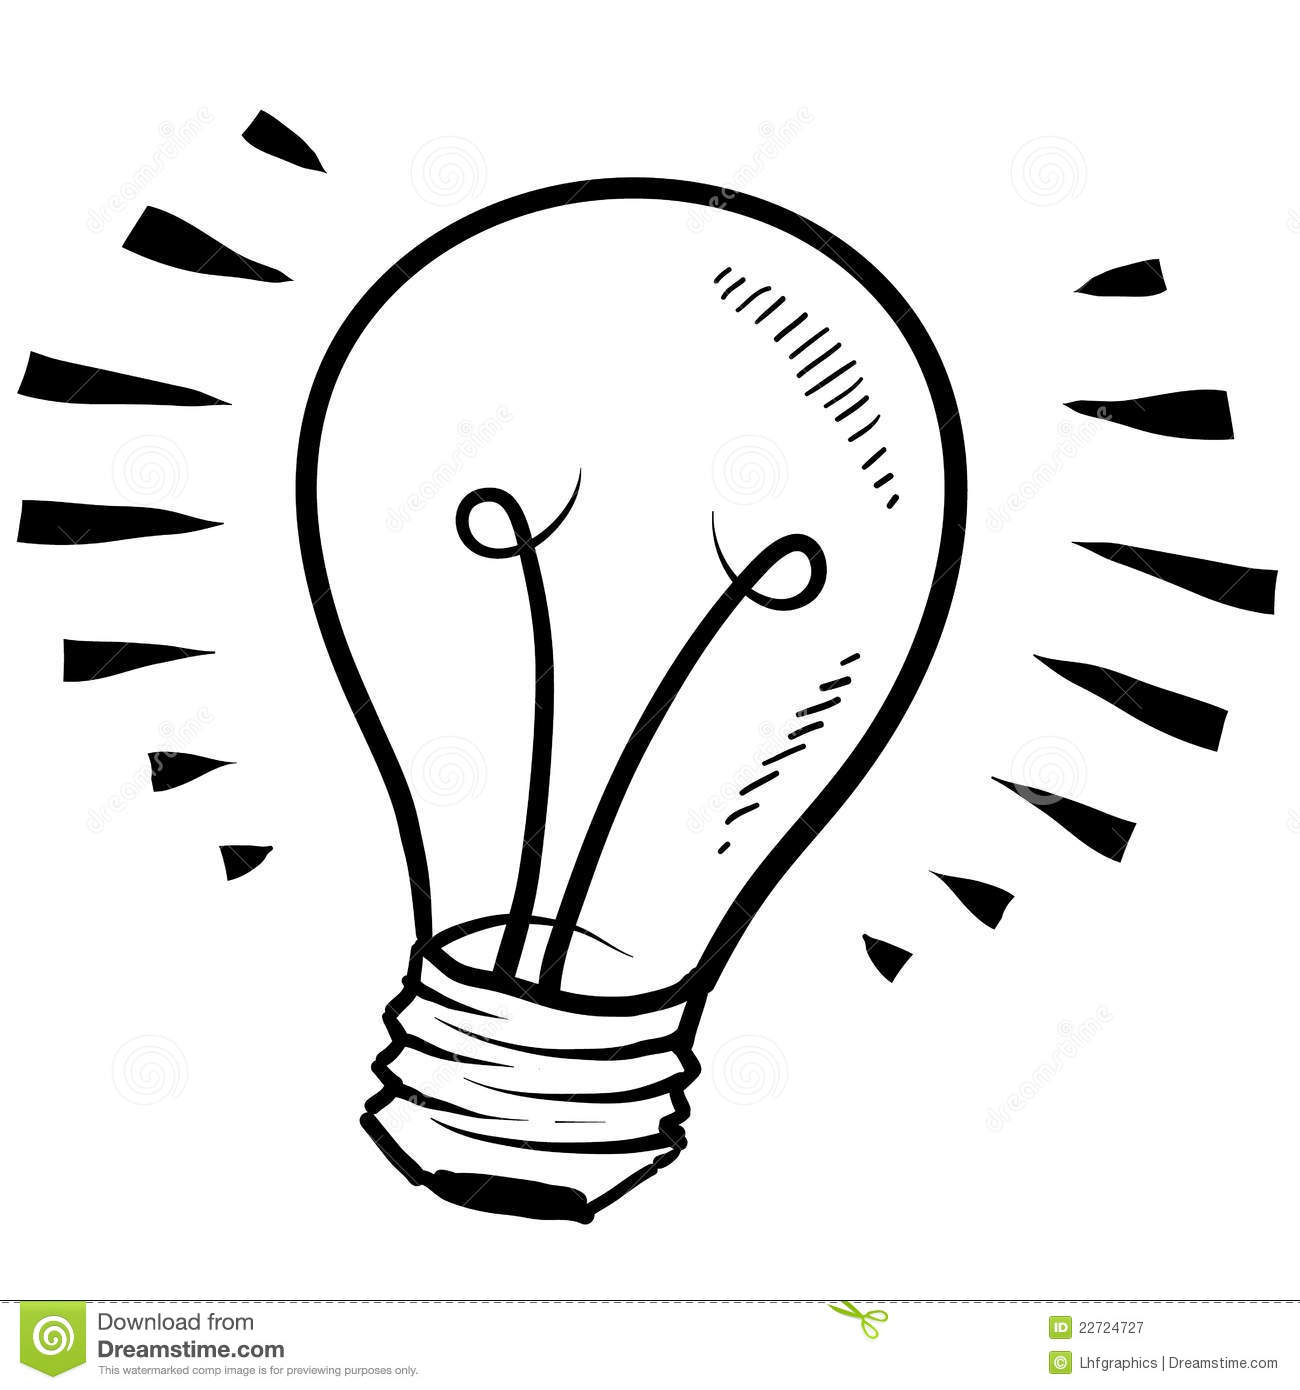 Set Of Hand Drawn Light Bulbs Symbol Of Ideas Stock: Light Bulb Sketch Royalty Free Stock Photography